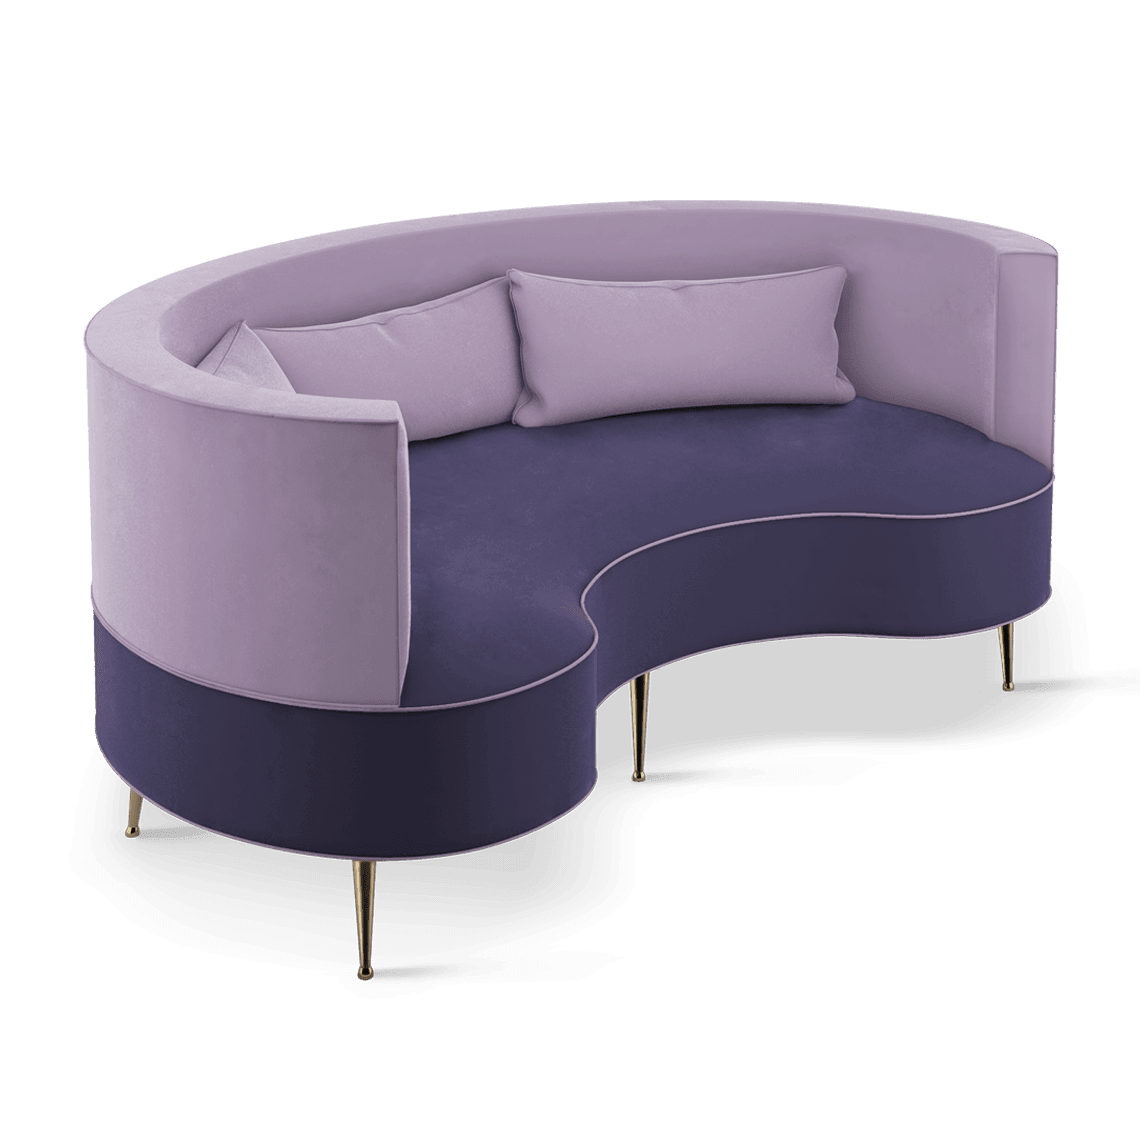 Margret Mid-Century Modern Twin Seat in purple and cassis cotton velvet